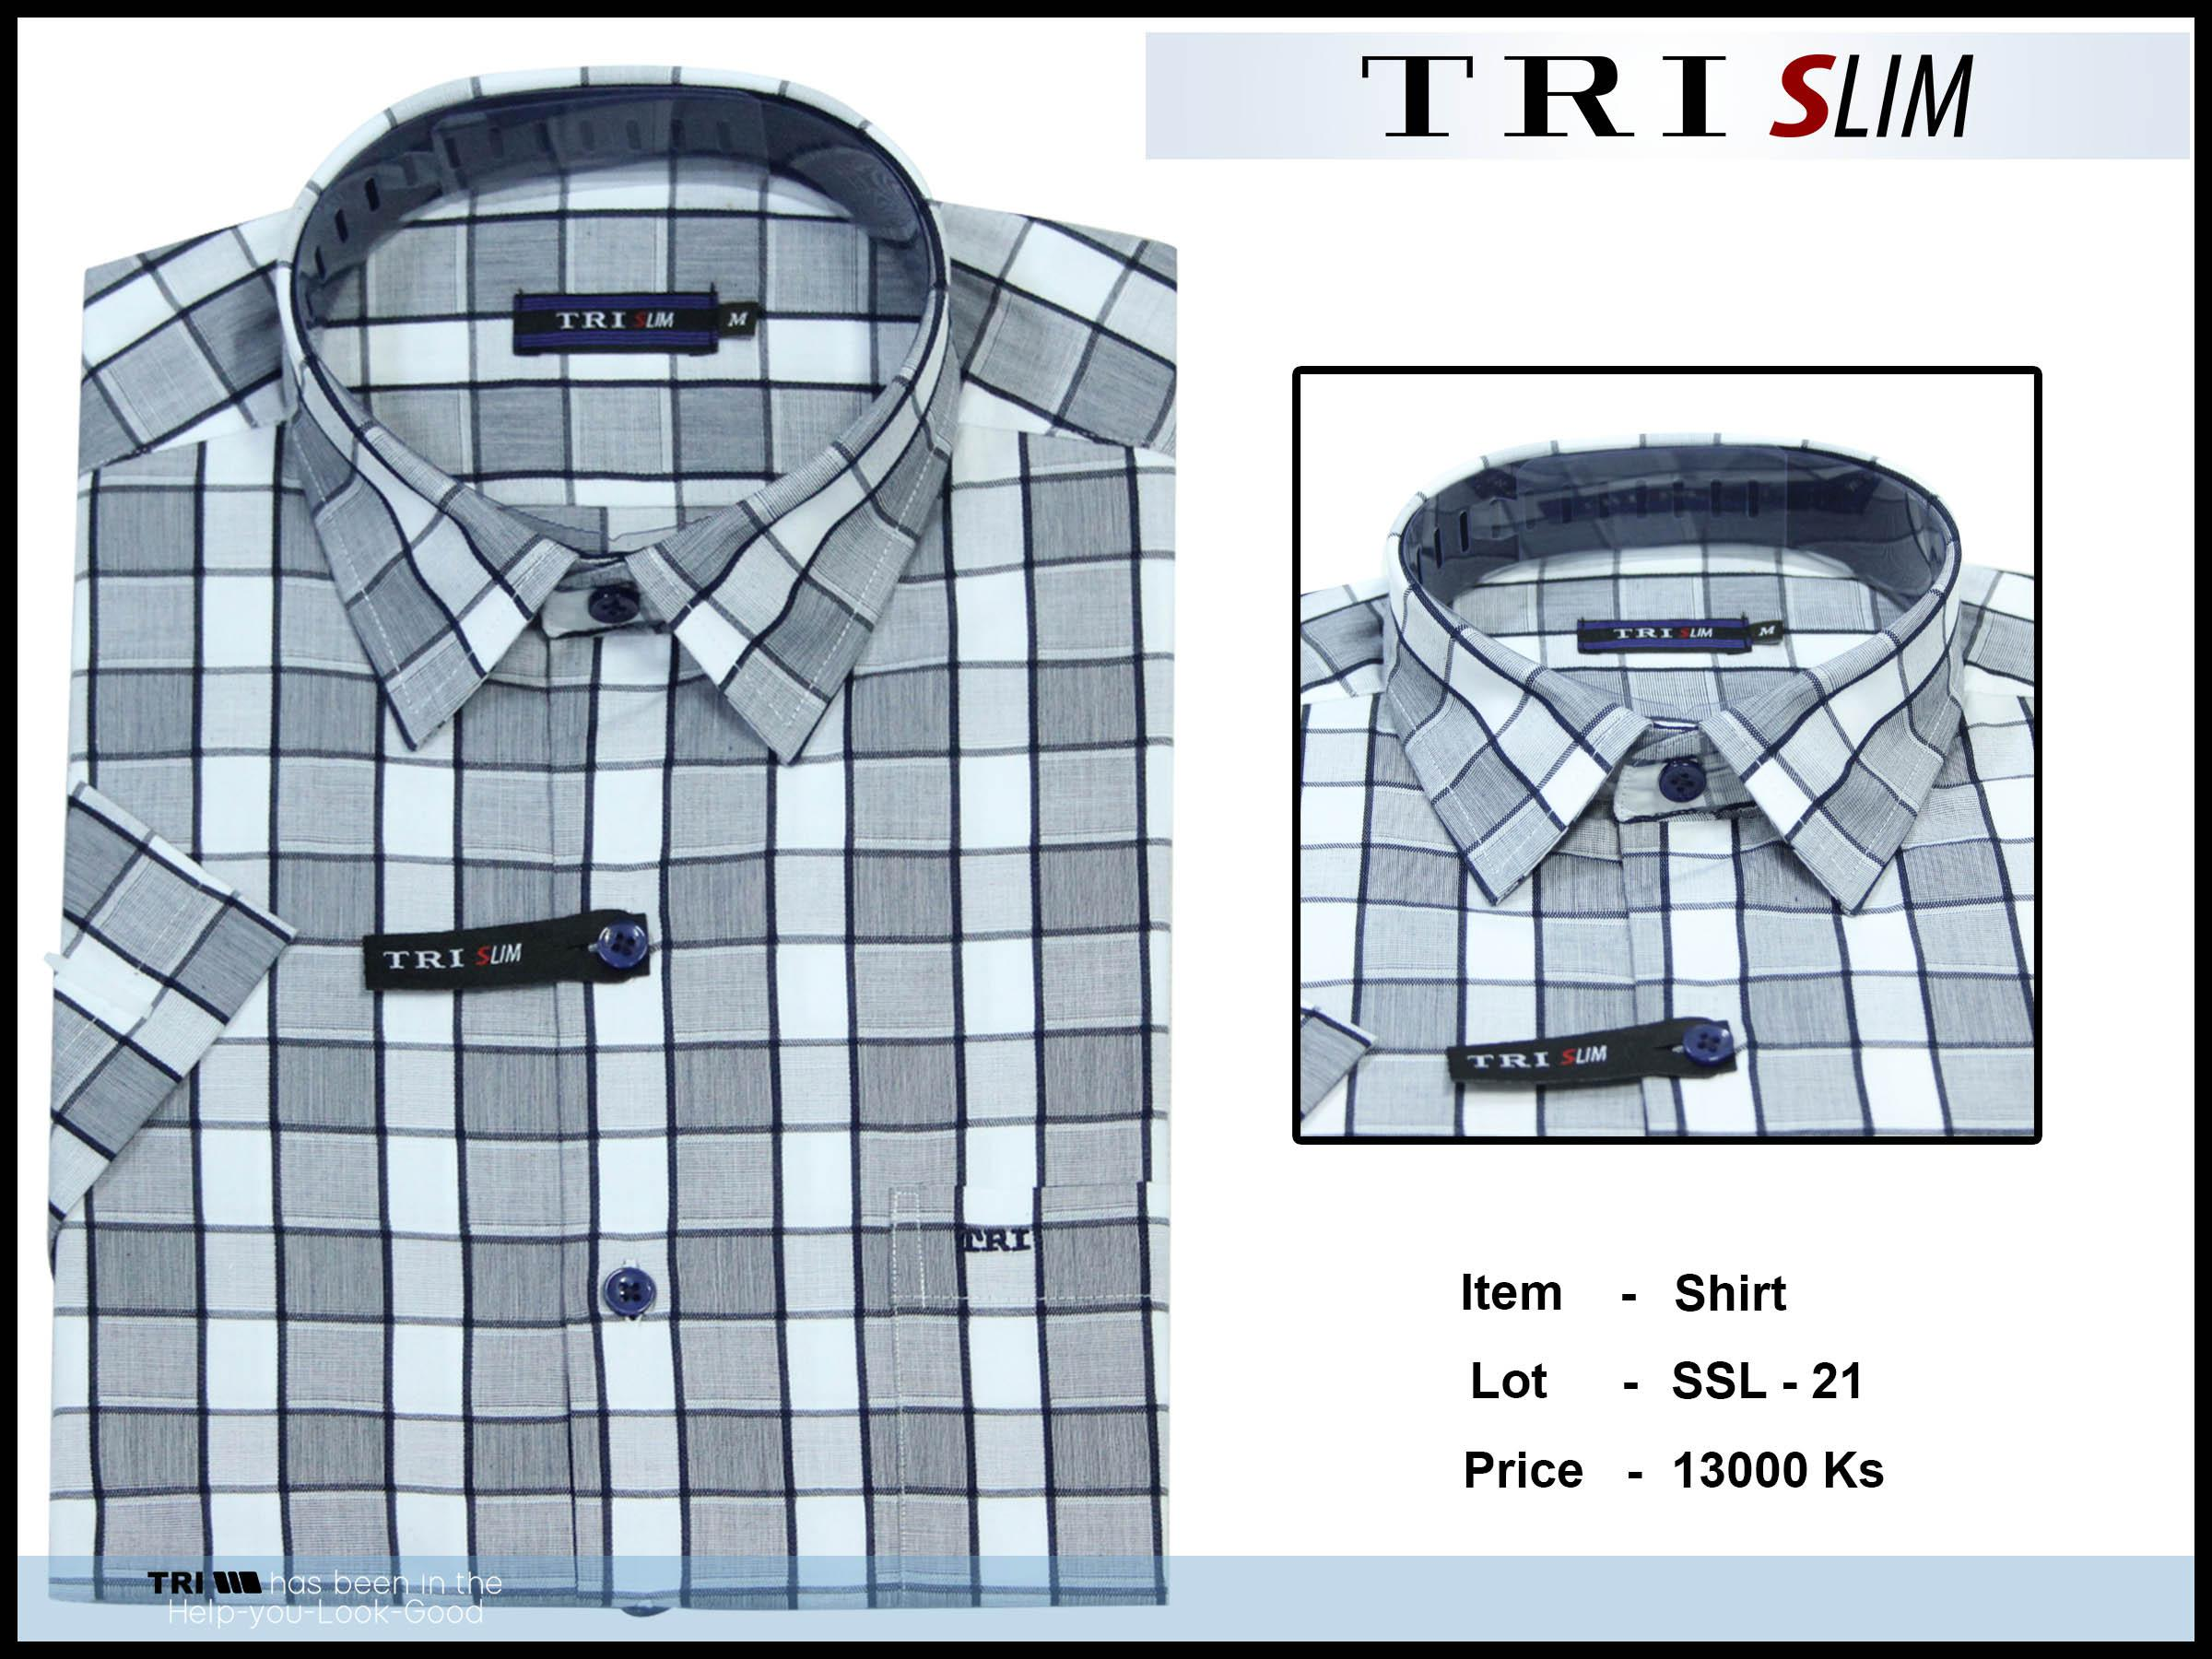 Tri Slim Shirt SSL - 21 - 18